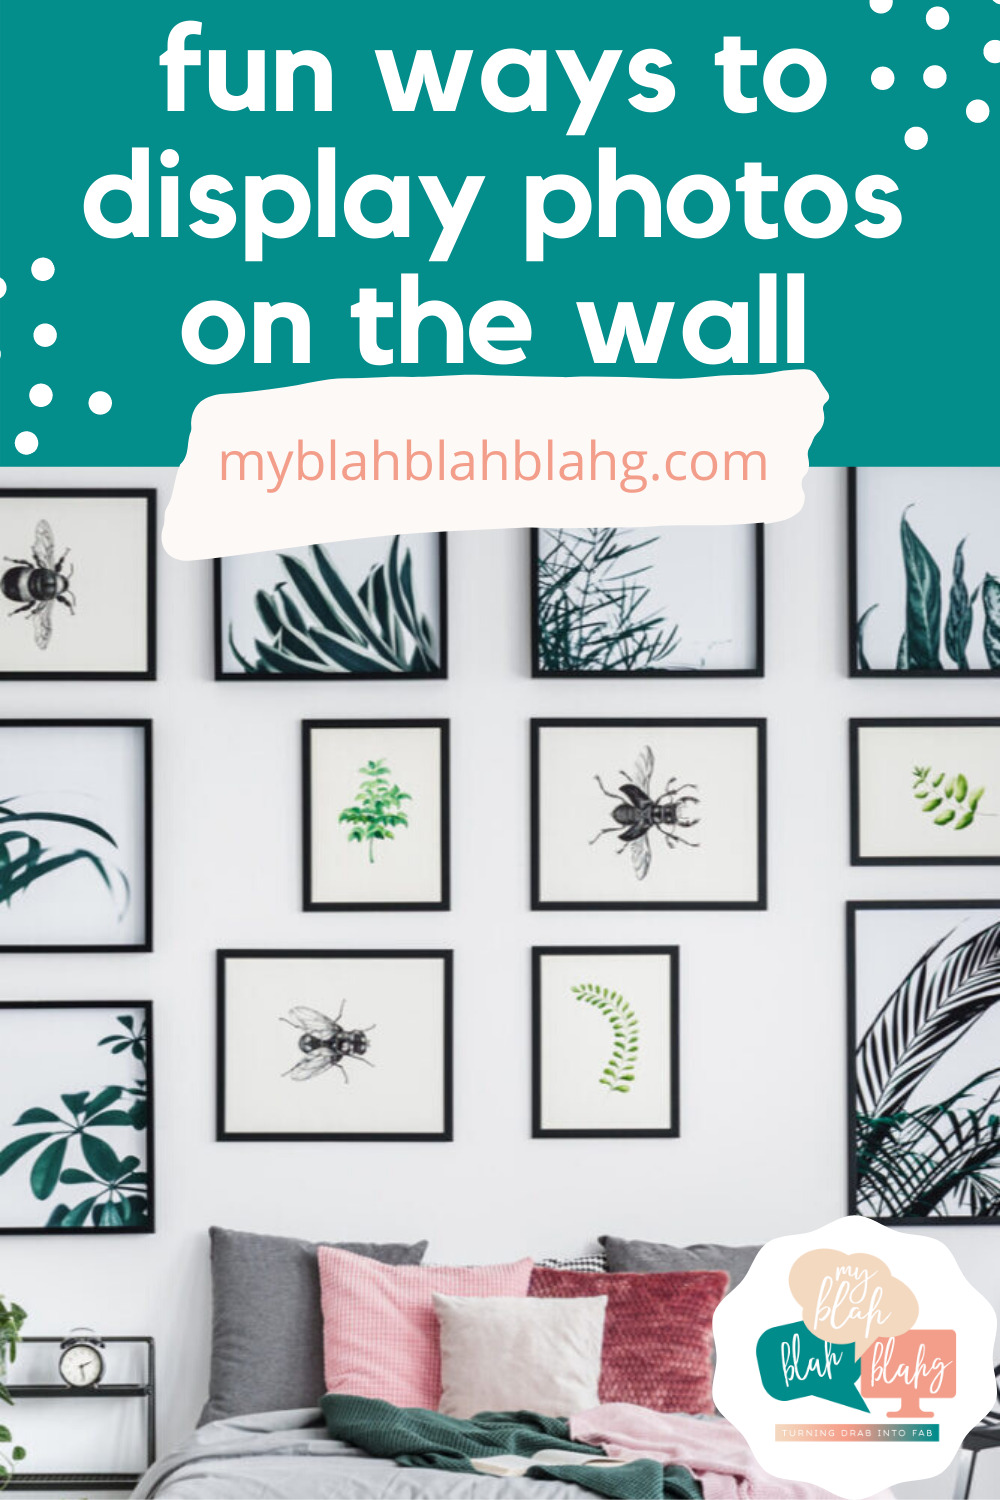 From frames to parties, we've gathered up some creative ways to display your photos! Come check out our post for some ideas and inspiration. #MyBlahBlahBlahg #CreativePhotoDisplay #PhotoDisplayIdeas #PhotoDisplayWedding #PhotoDisplayParty